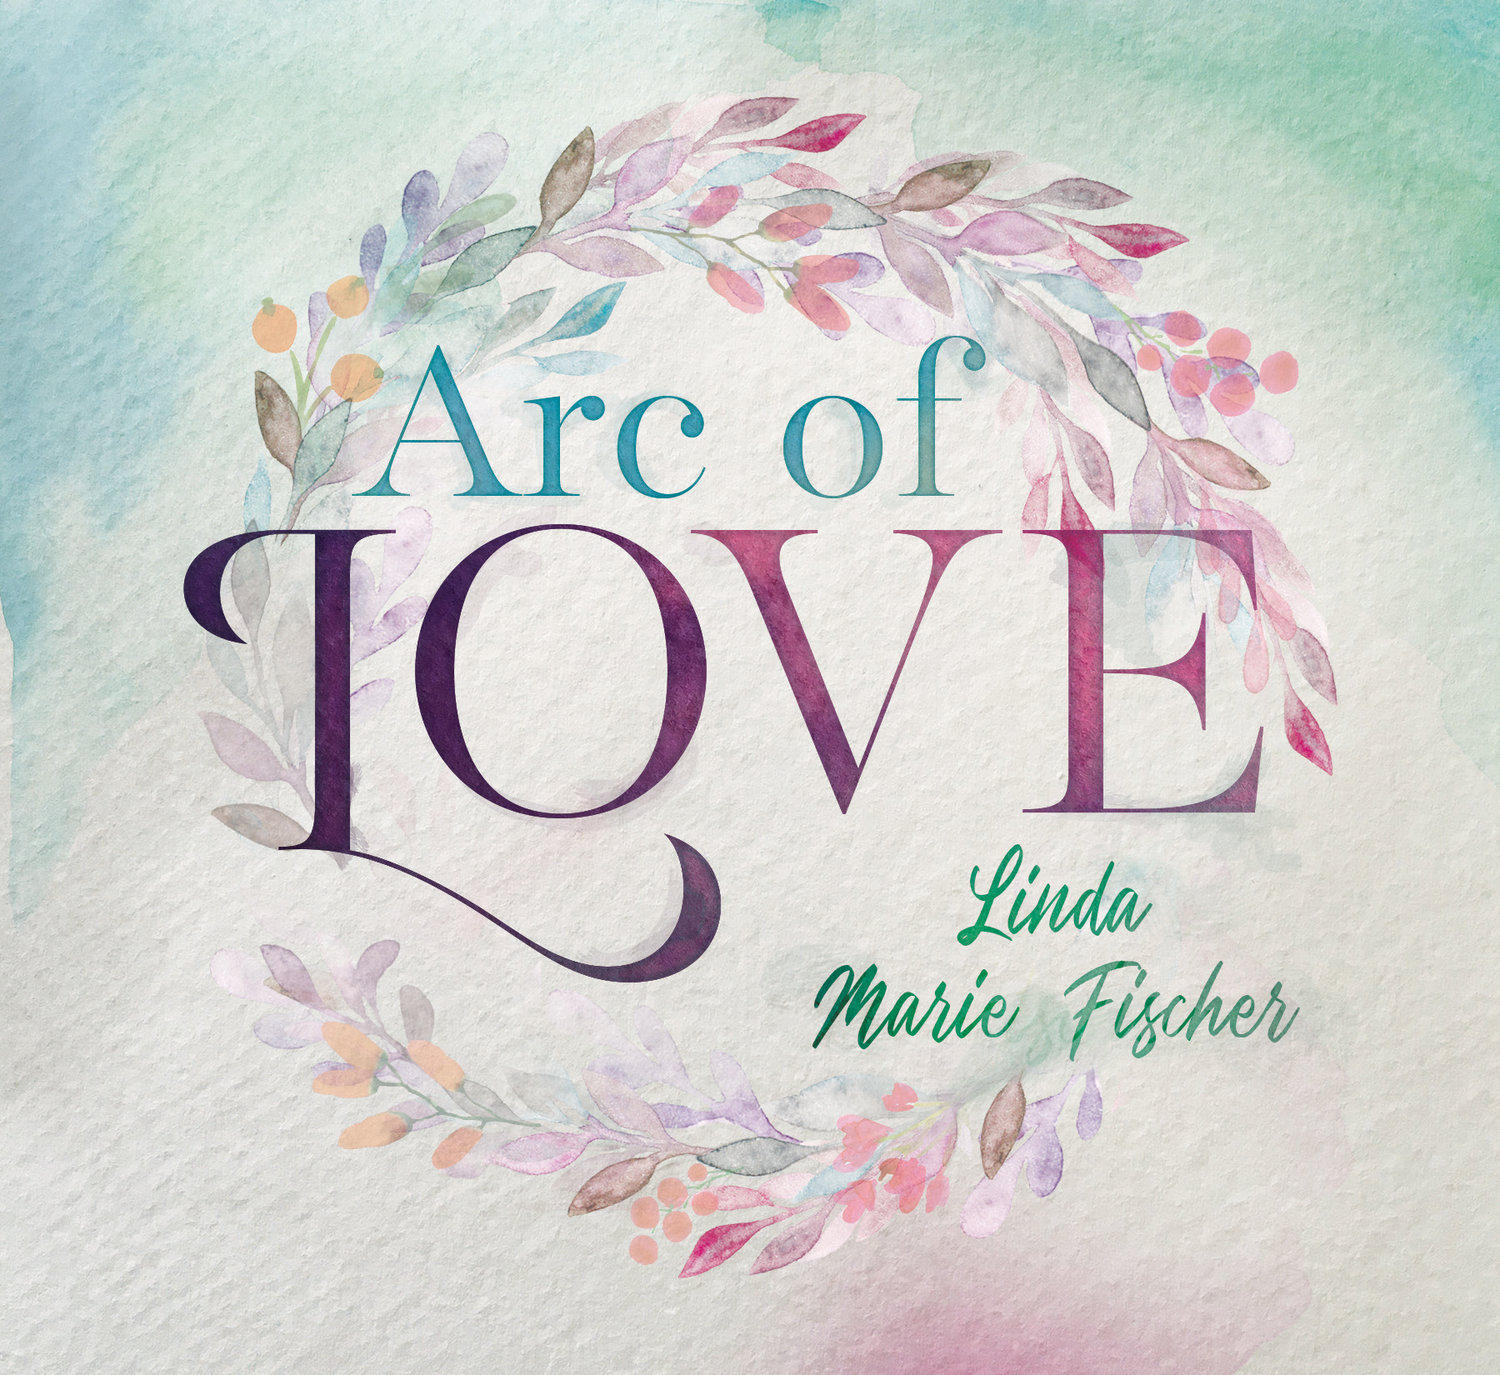 Arc of Love by Linda Marie Fischer